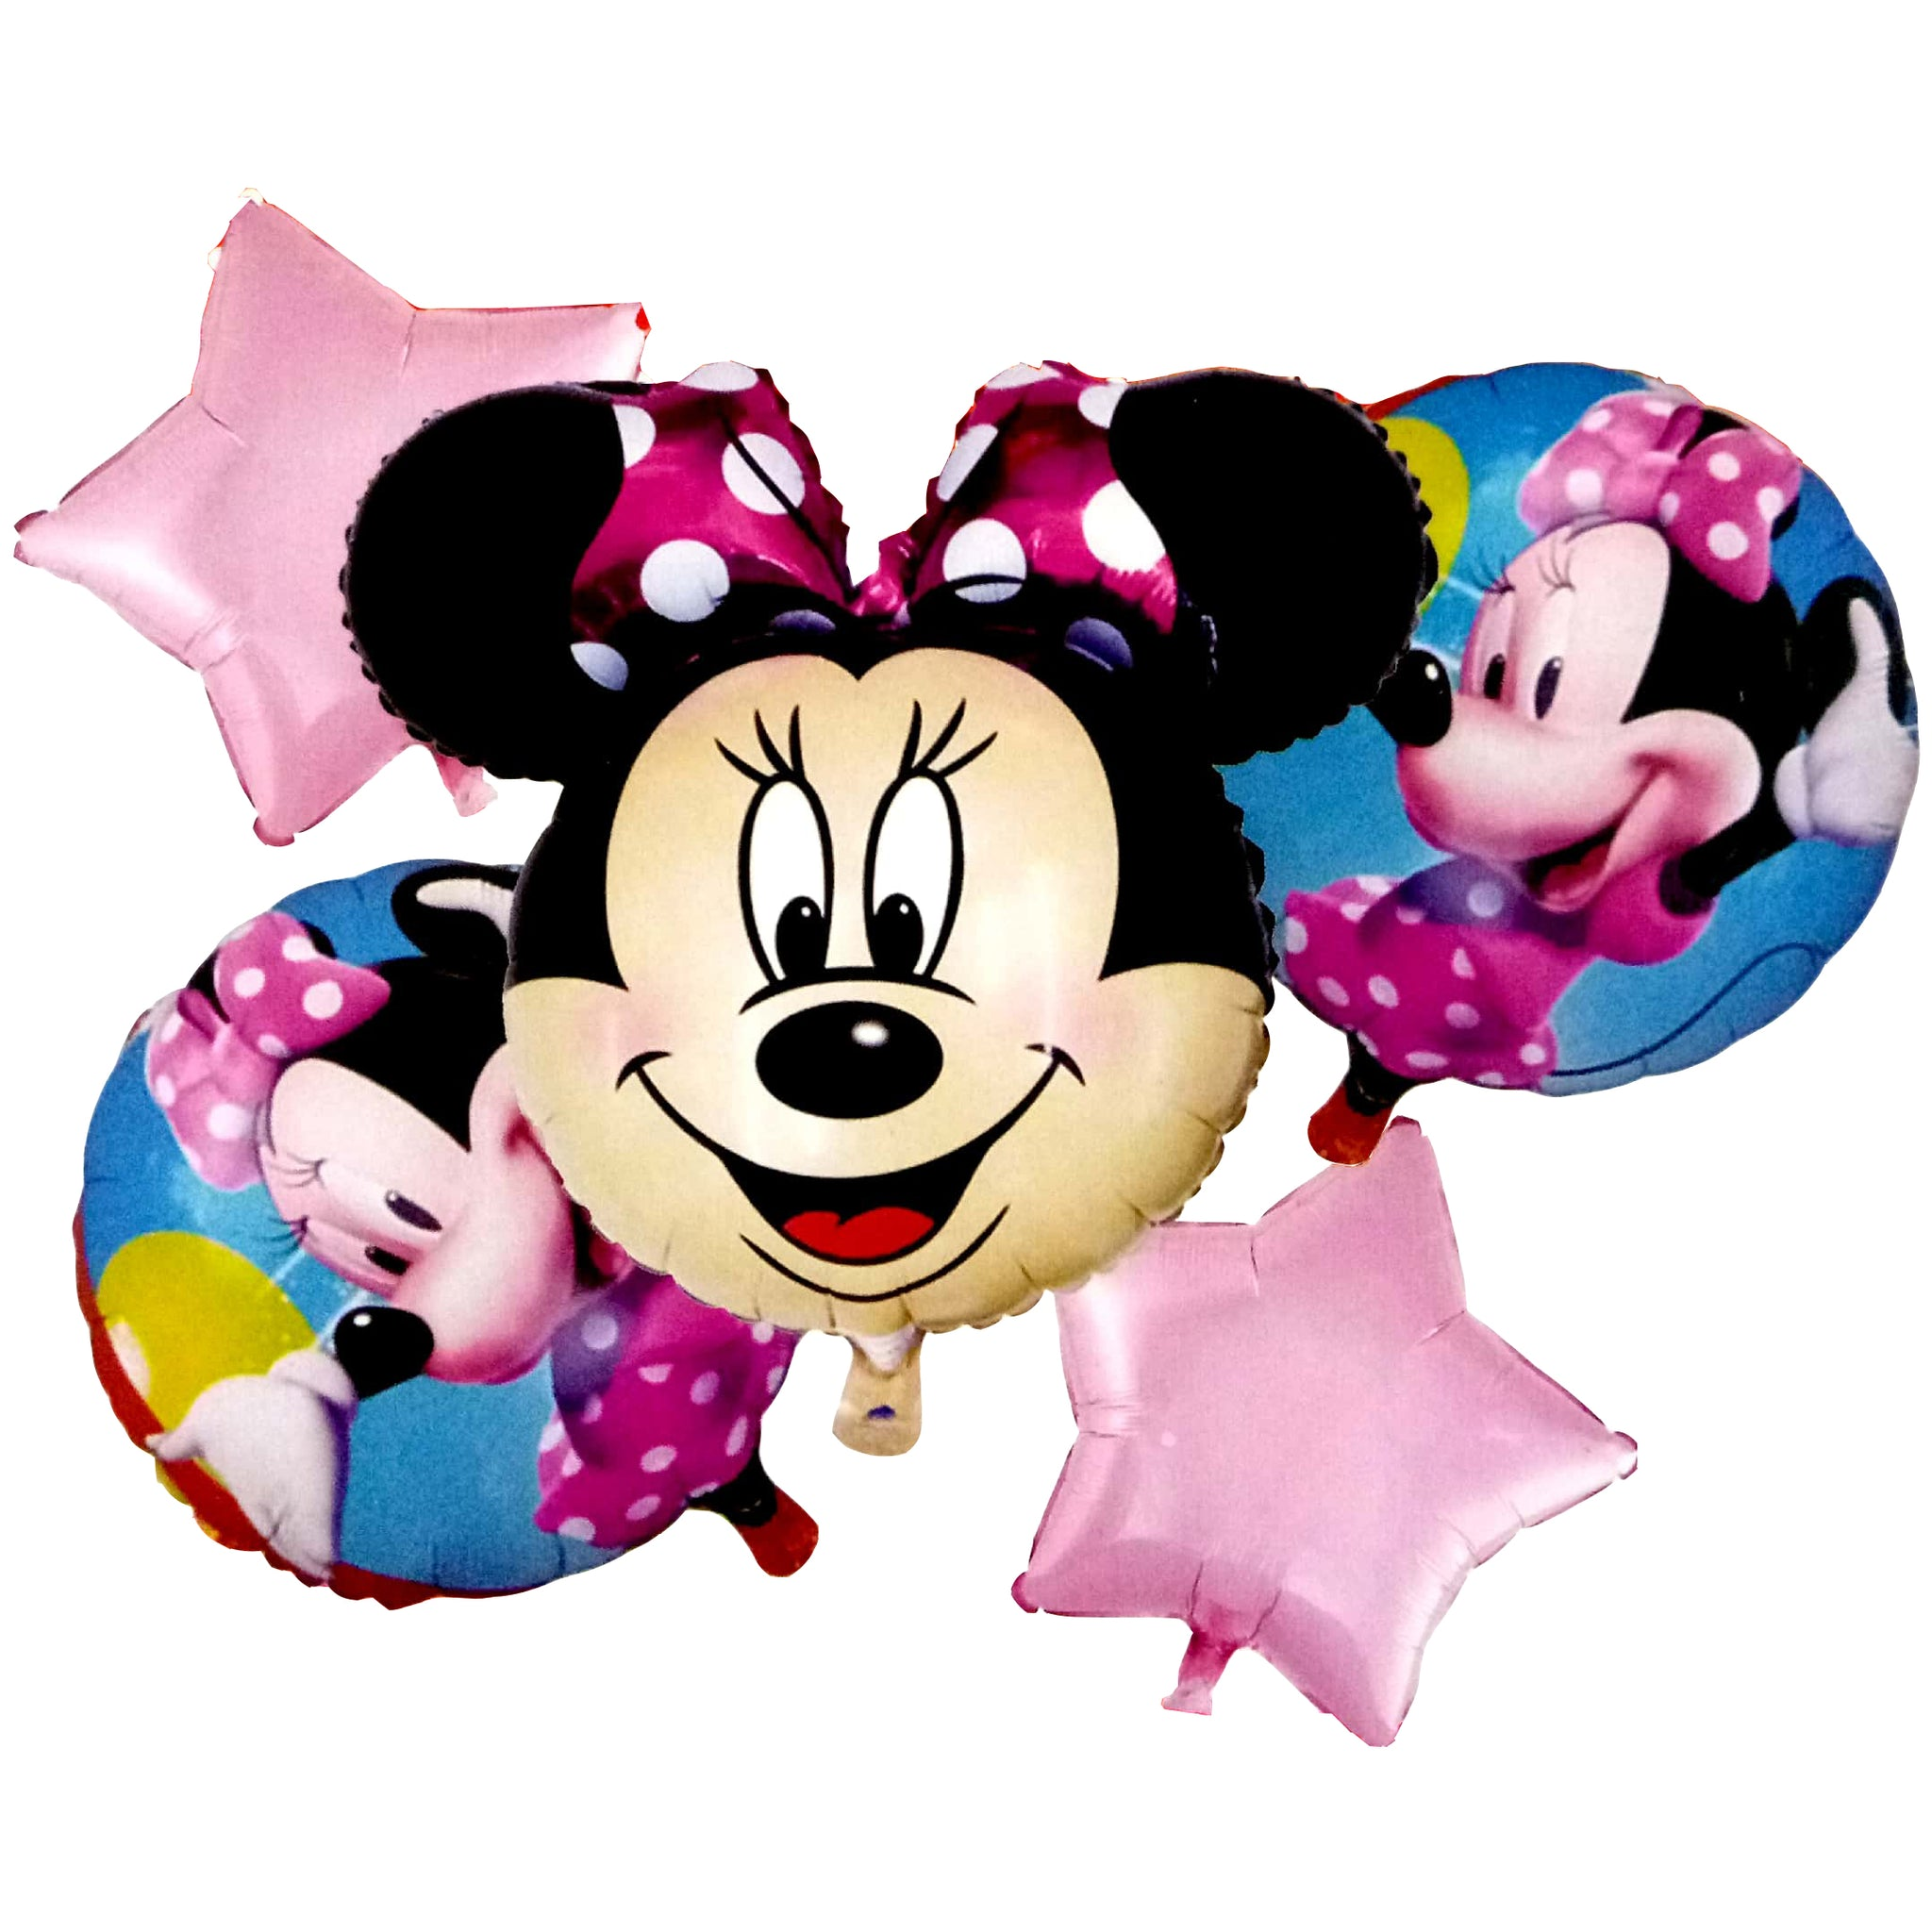 Minnie Mouse Face Jumbo Foil Balloons (Set of 5pcs.)